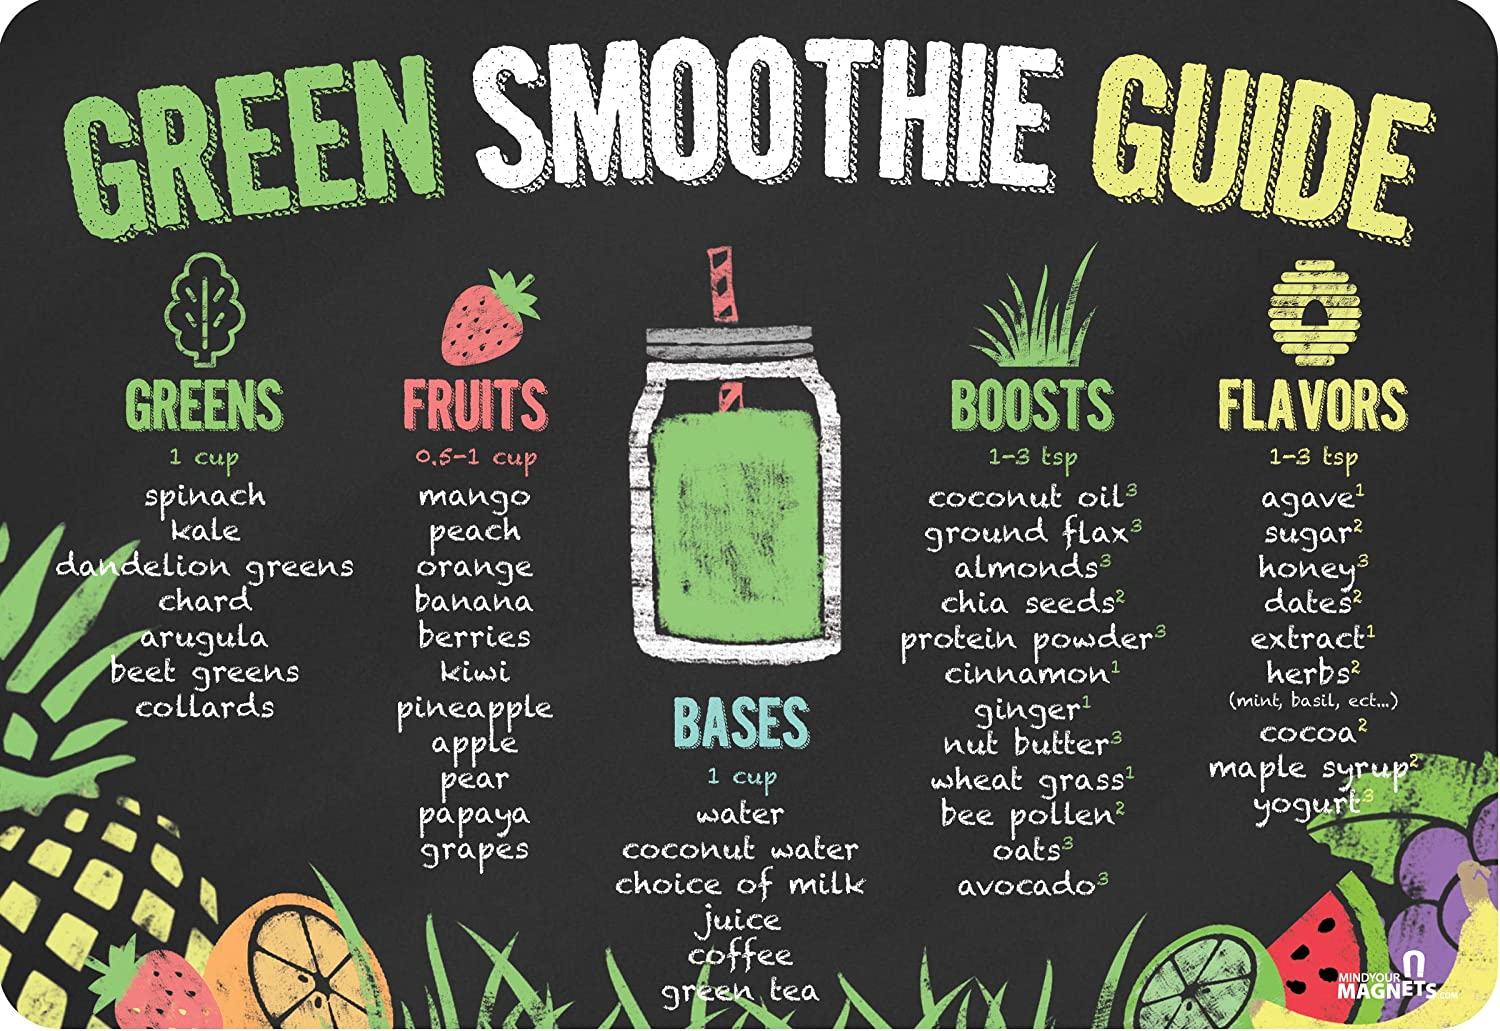 Mind Your Magnets Green Smoothie Magnet - Healthy Eating Smoothie Recipes  Cheat Sheet